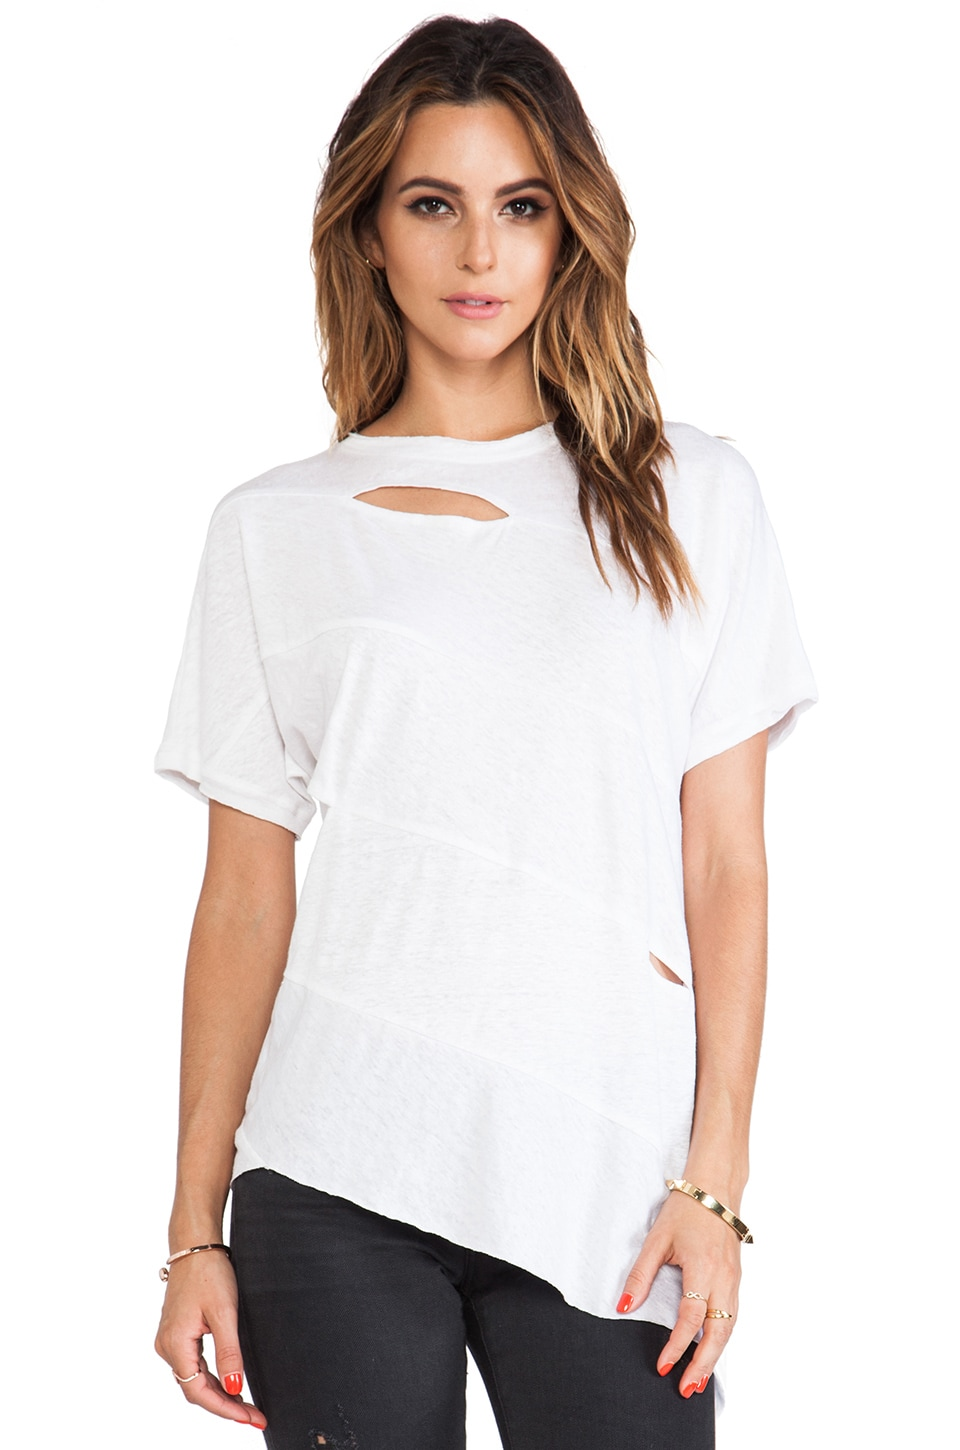 sen Paz Top in White